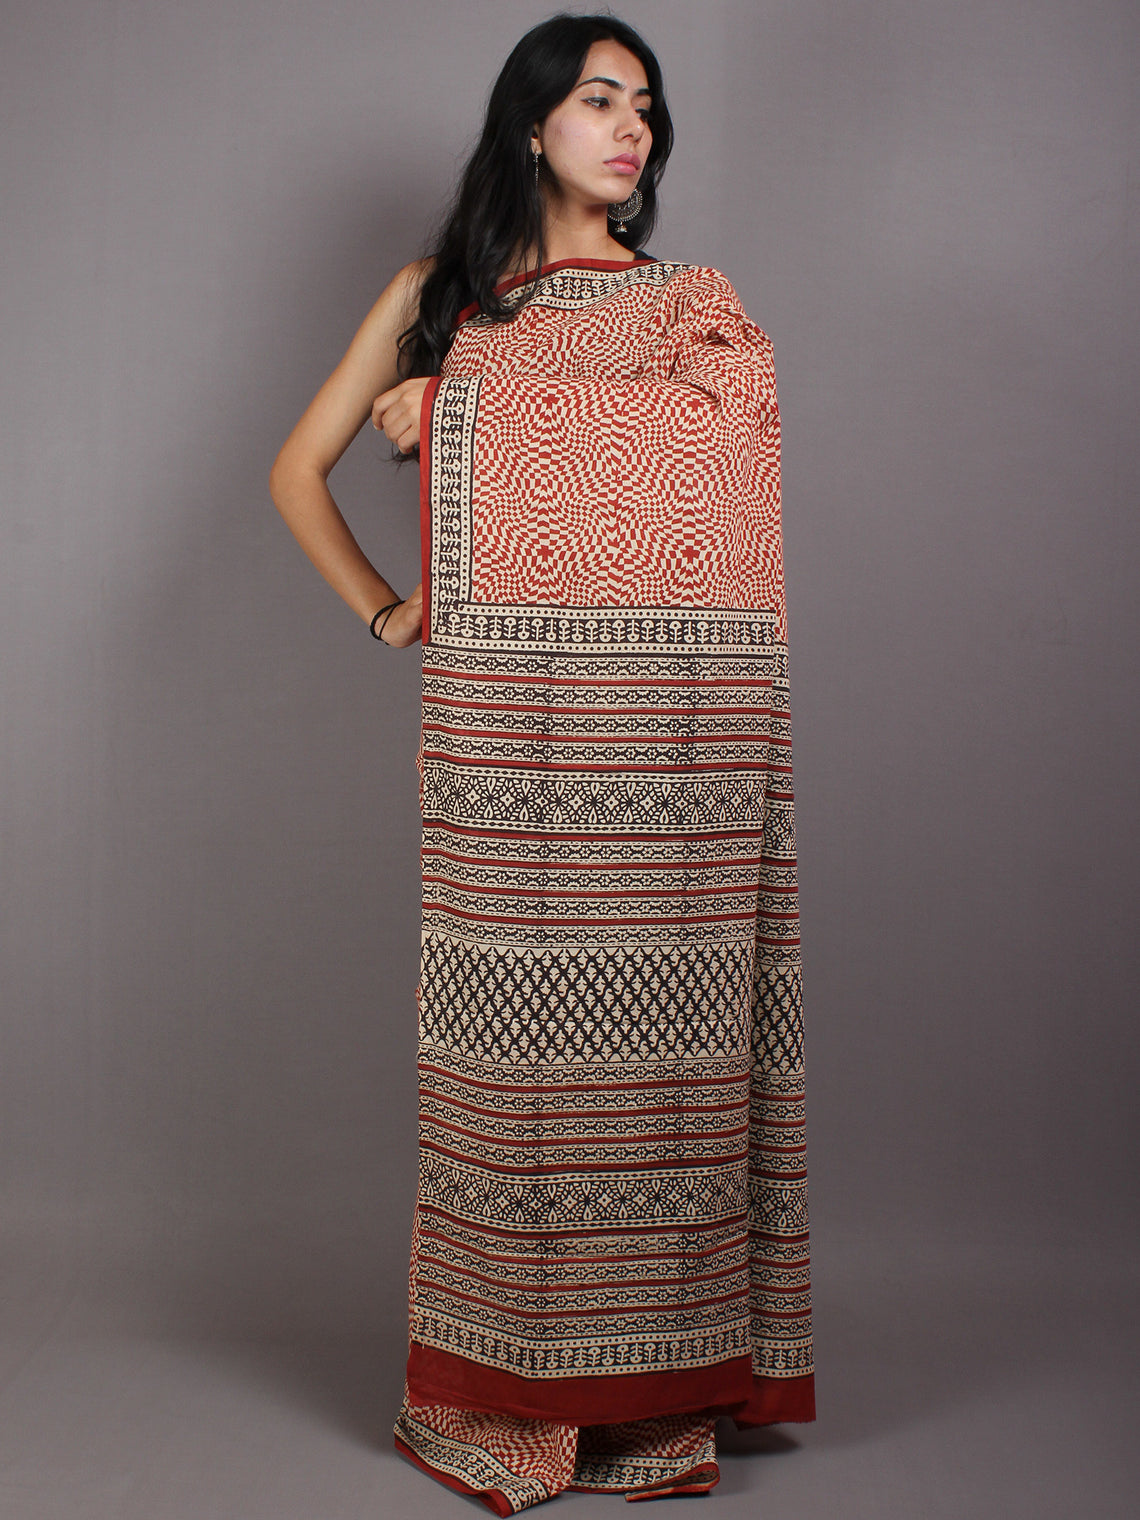 Beige Red Black Cotton Hand Block Printed Saree in Natural Colors - S03170565